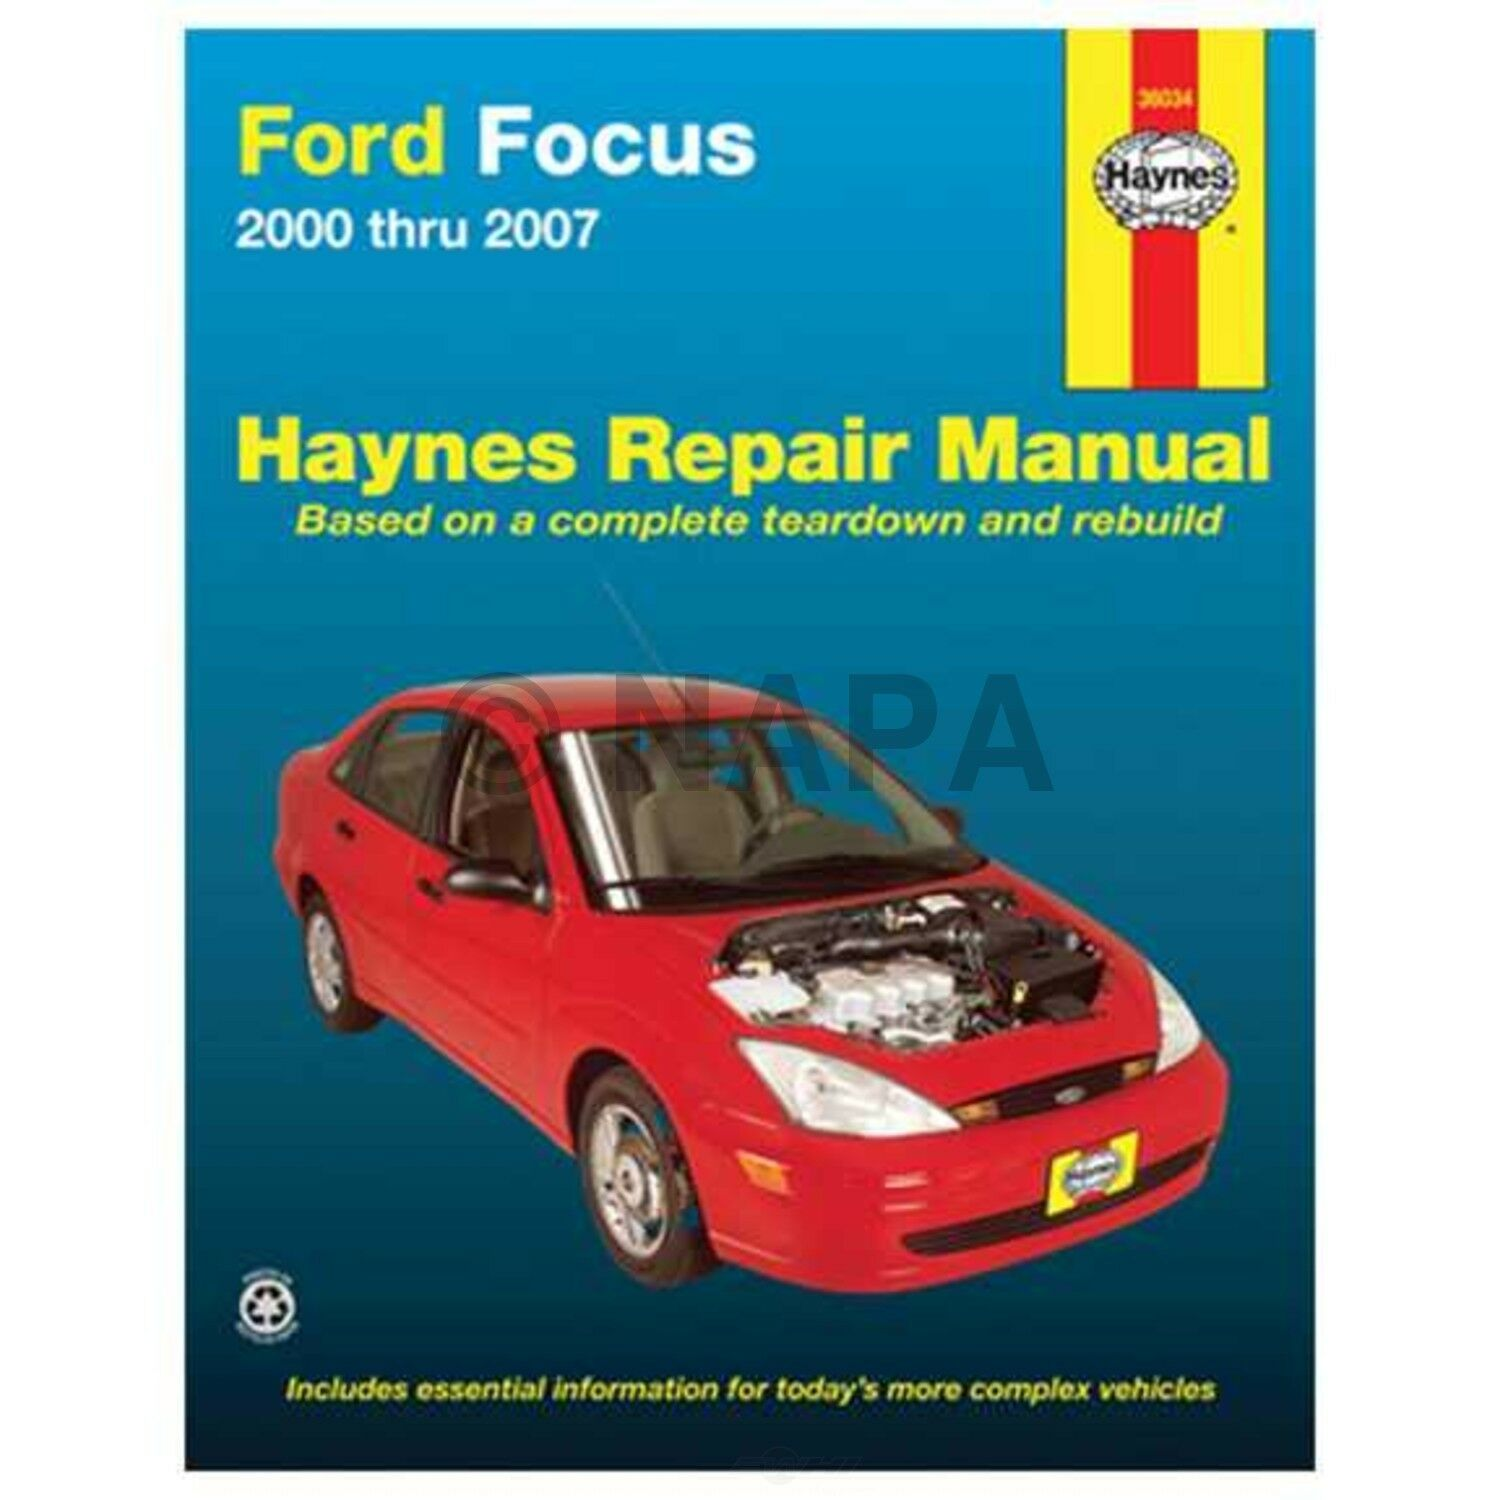 Repair Manual NAPA 7993077 fits 00-11 Ford Focus 1 of 1Only 1 available ...